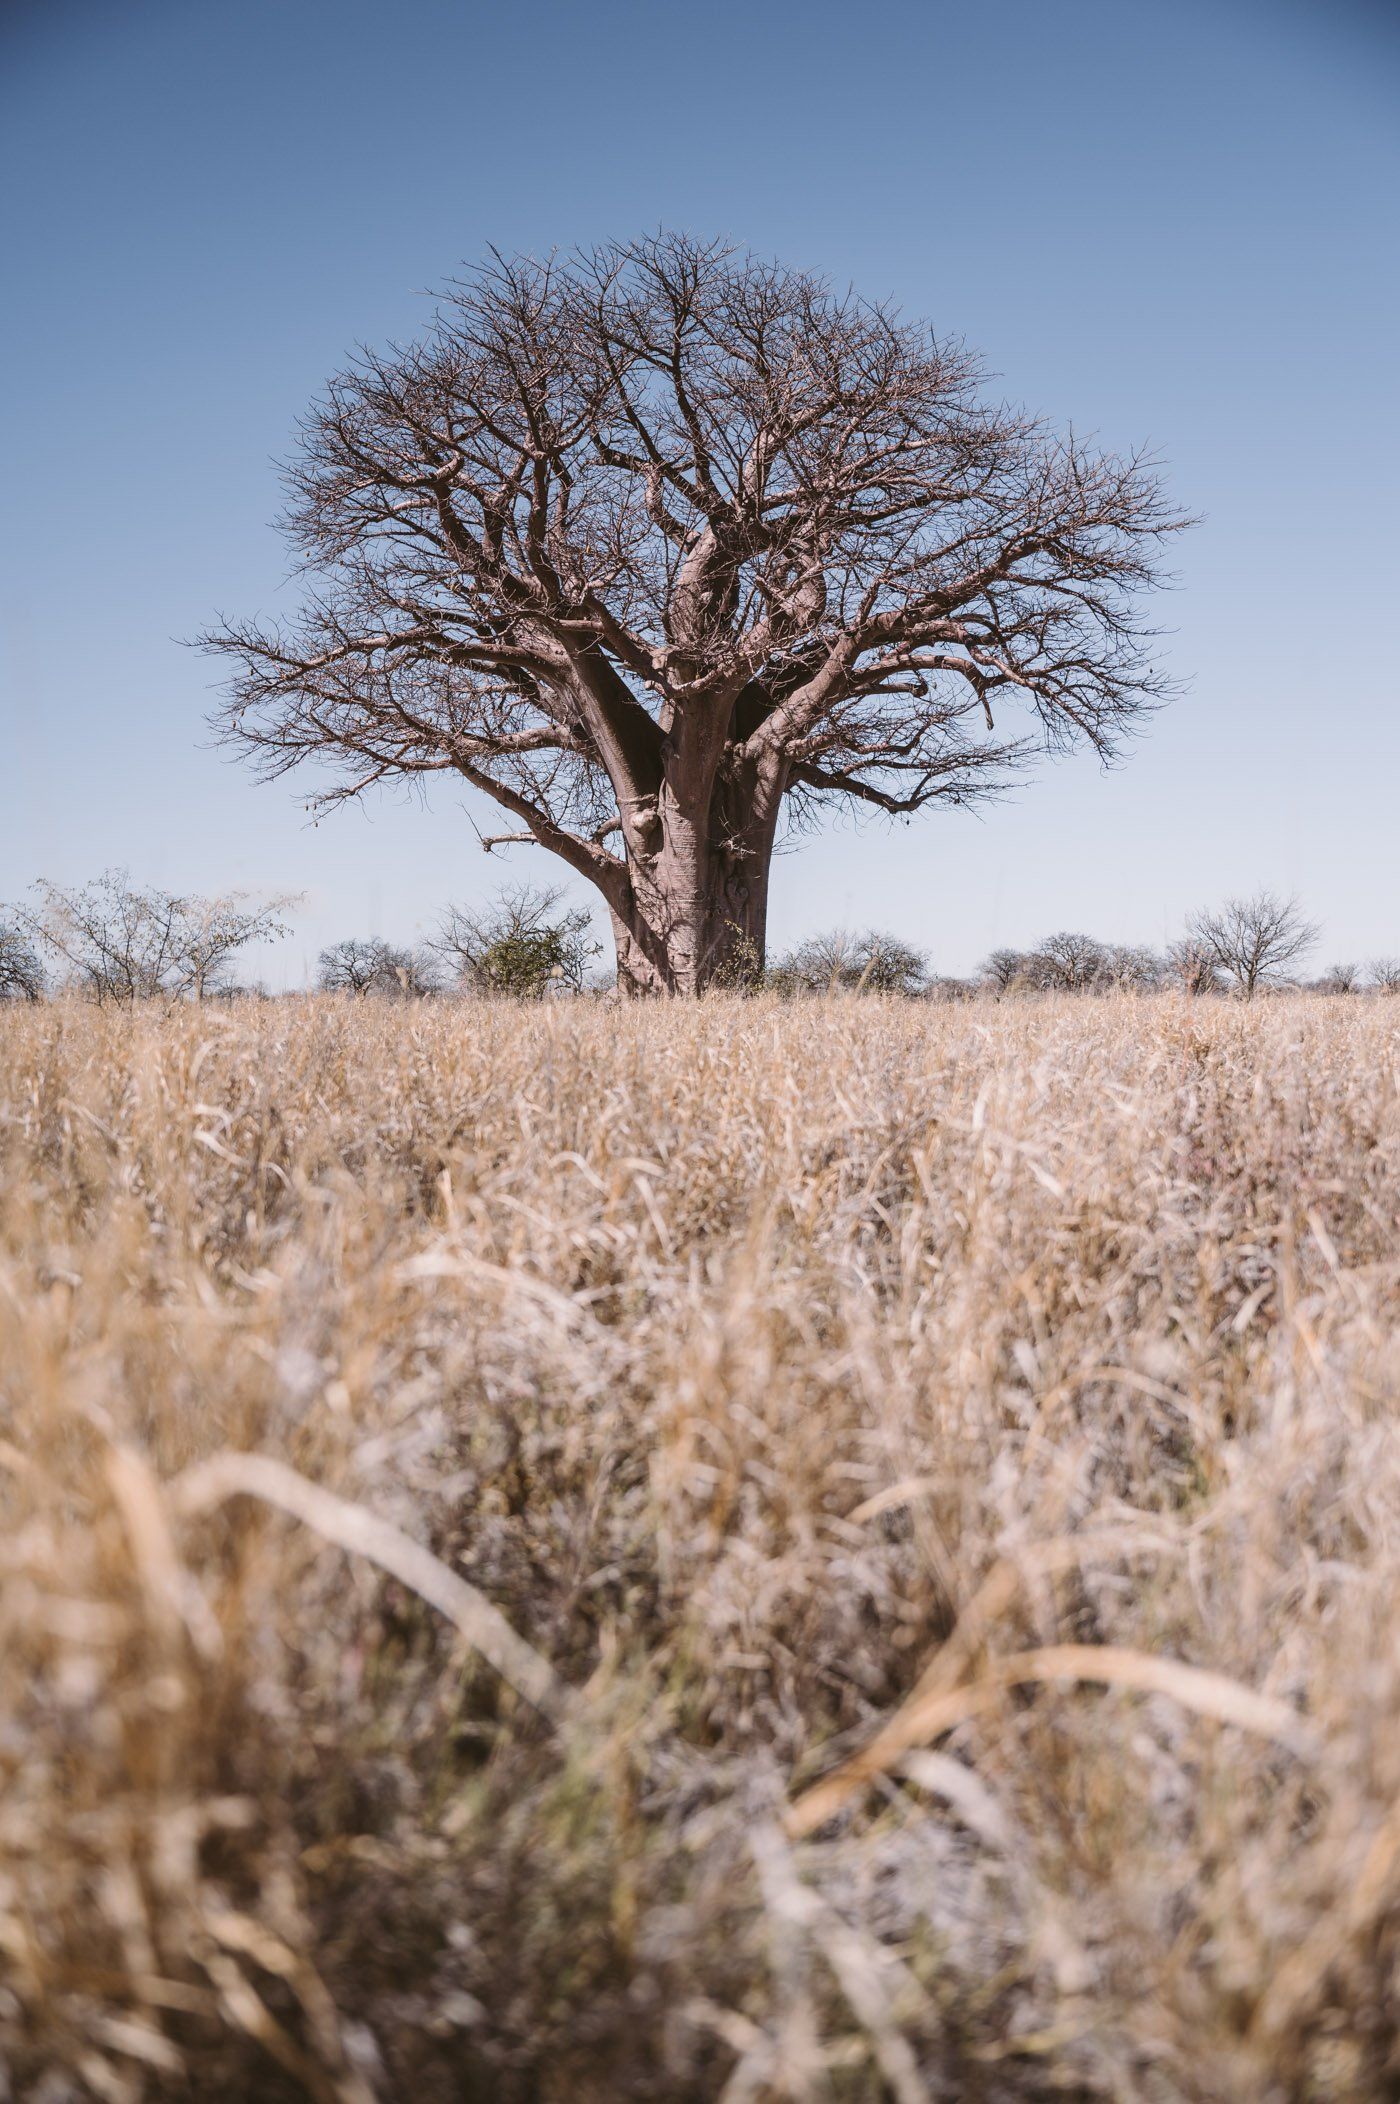 Baines Baobabs in the Nxai Pan National Park in Botswana